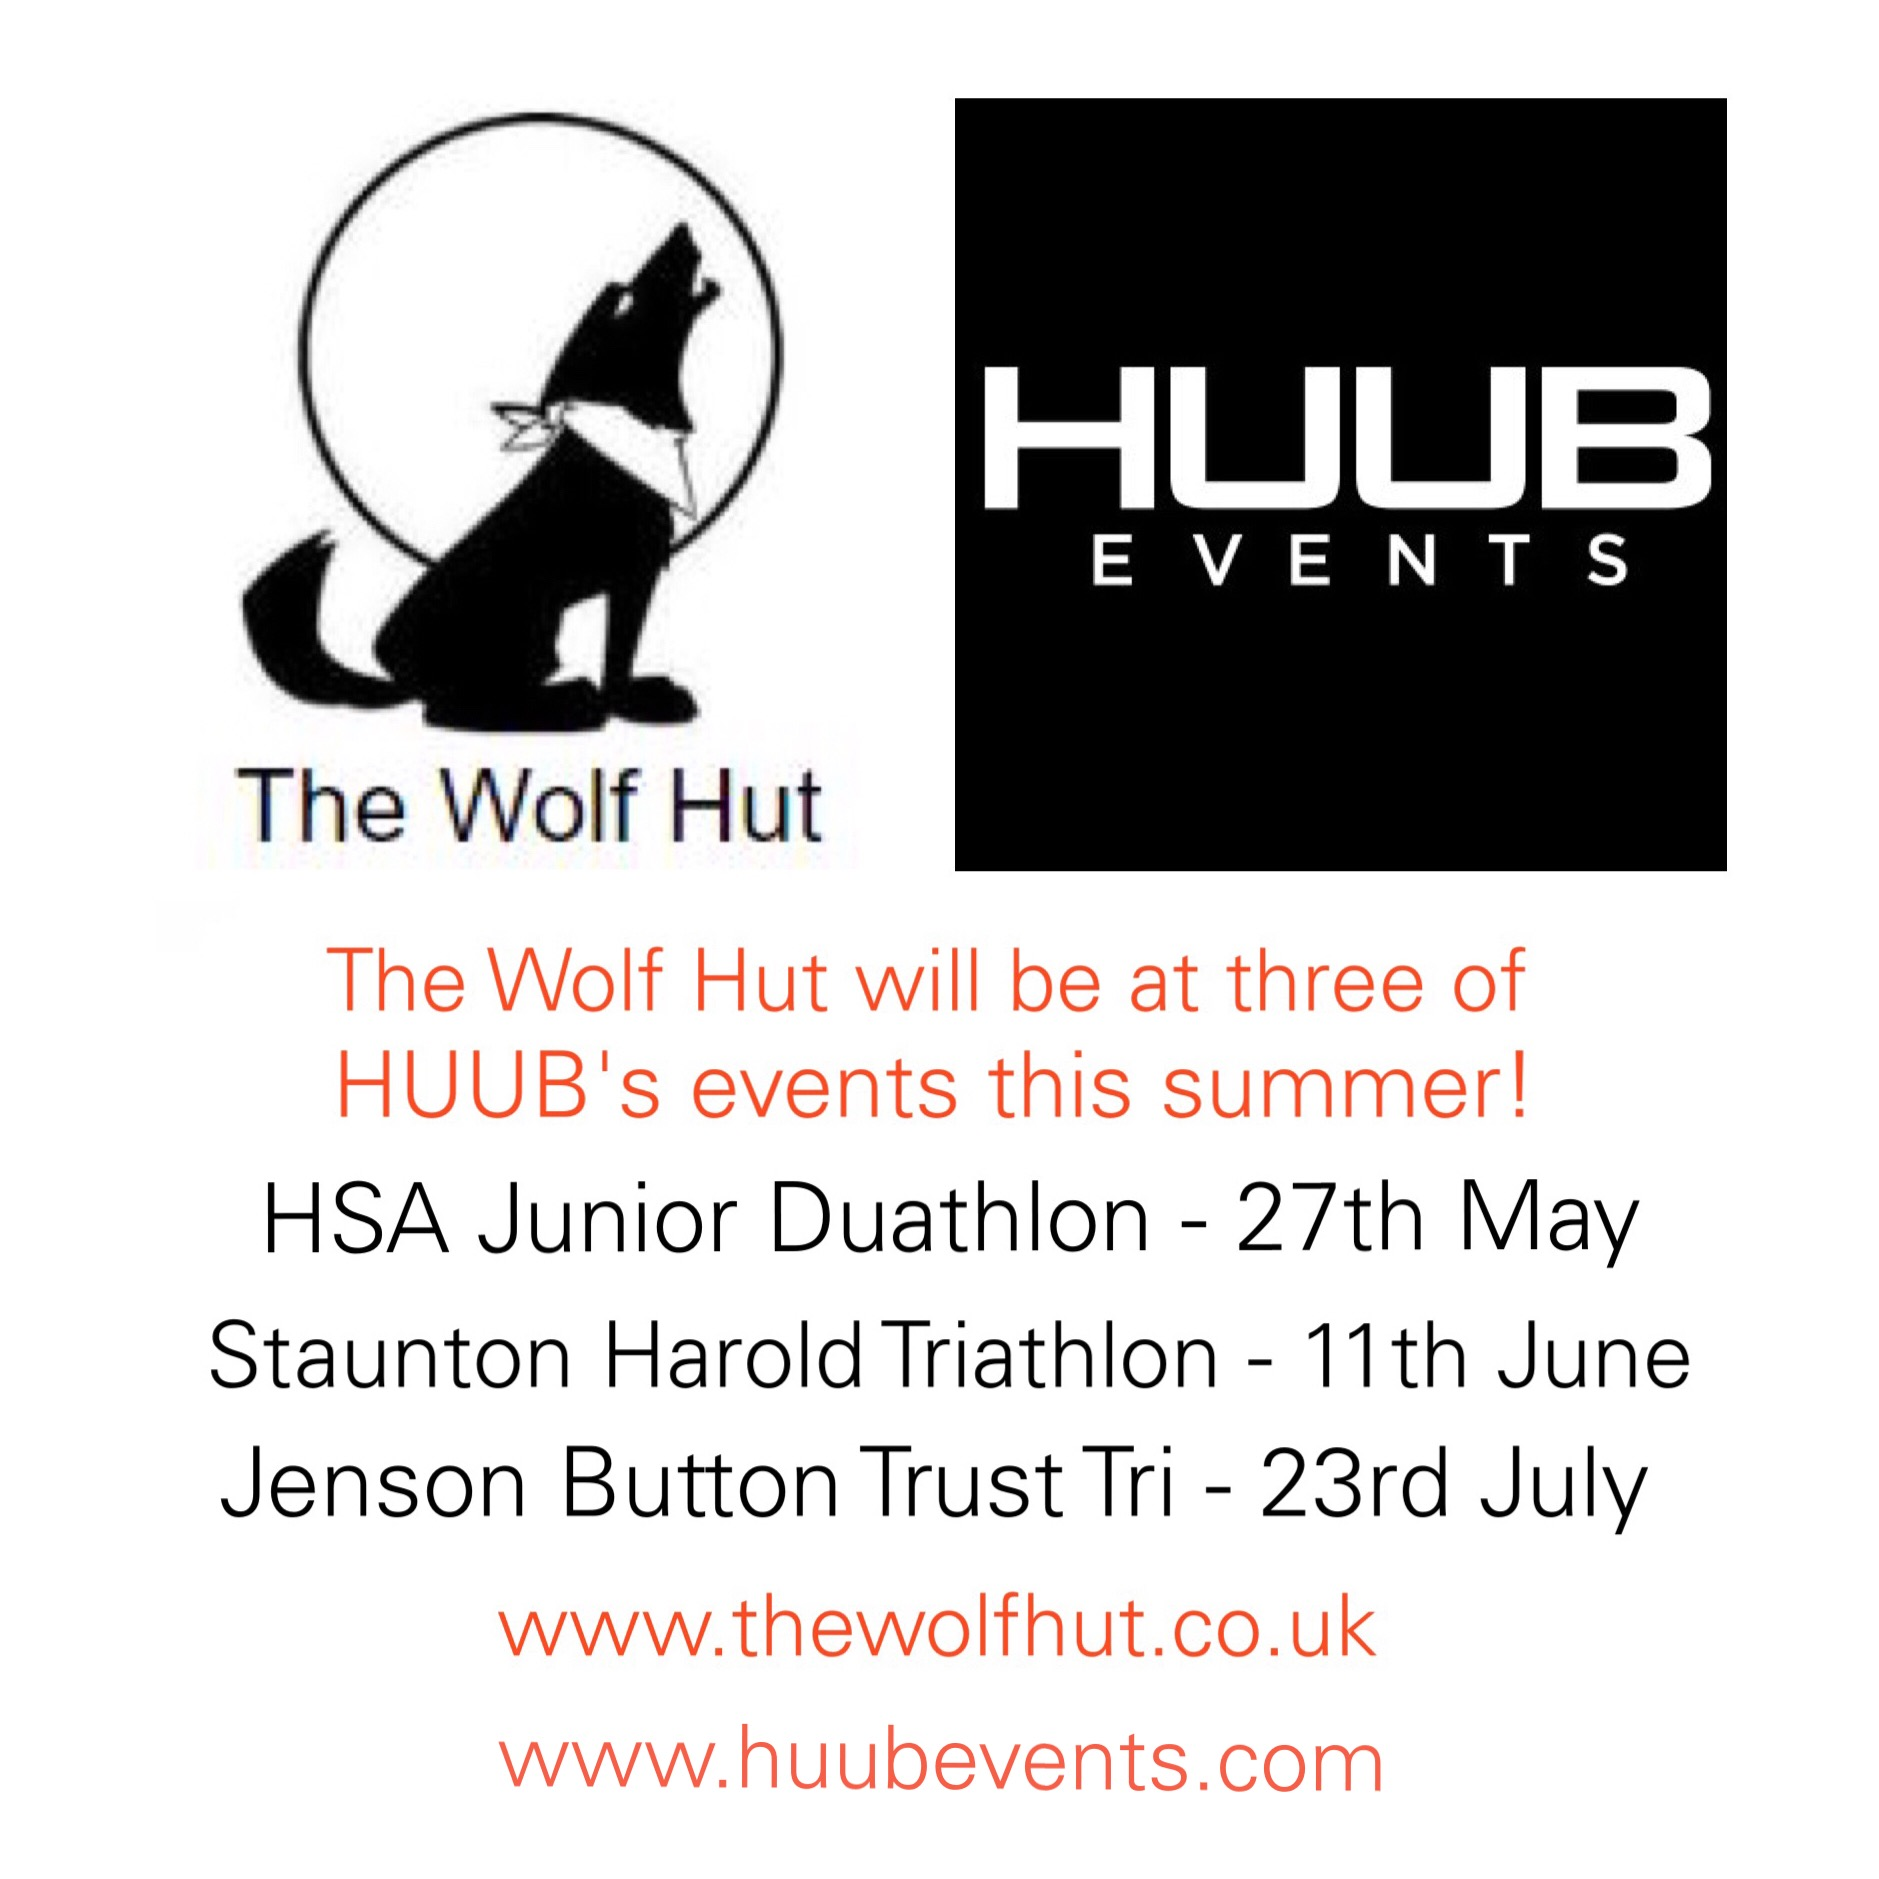 HUUB Events & The Wolf Hut